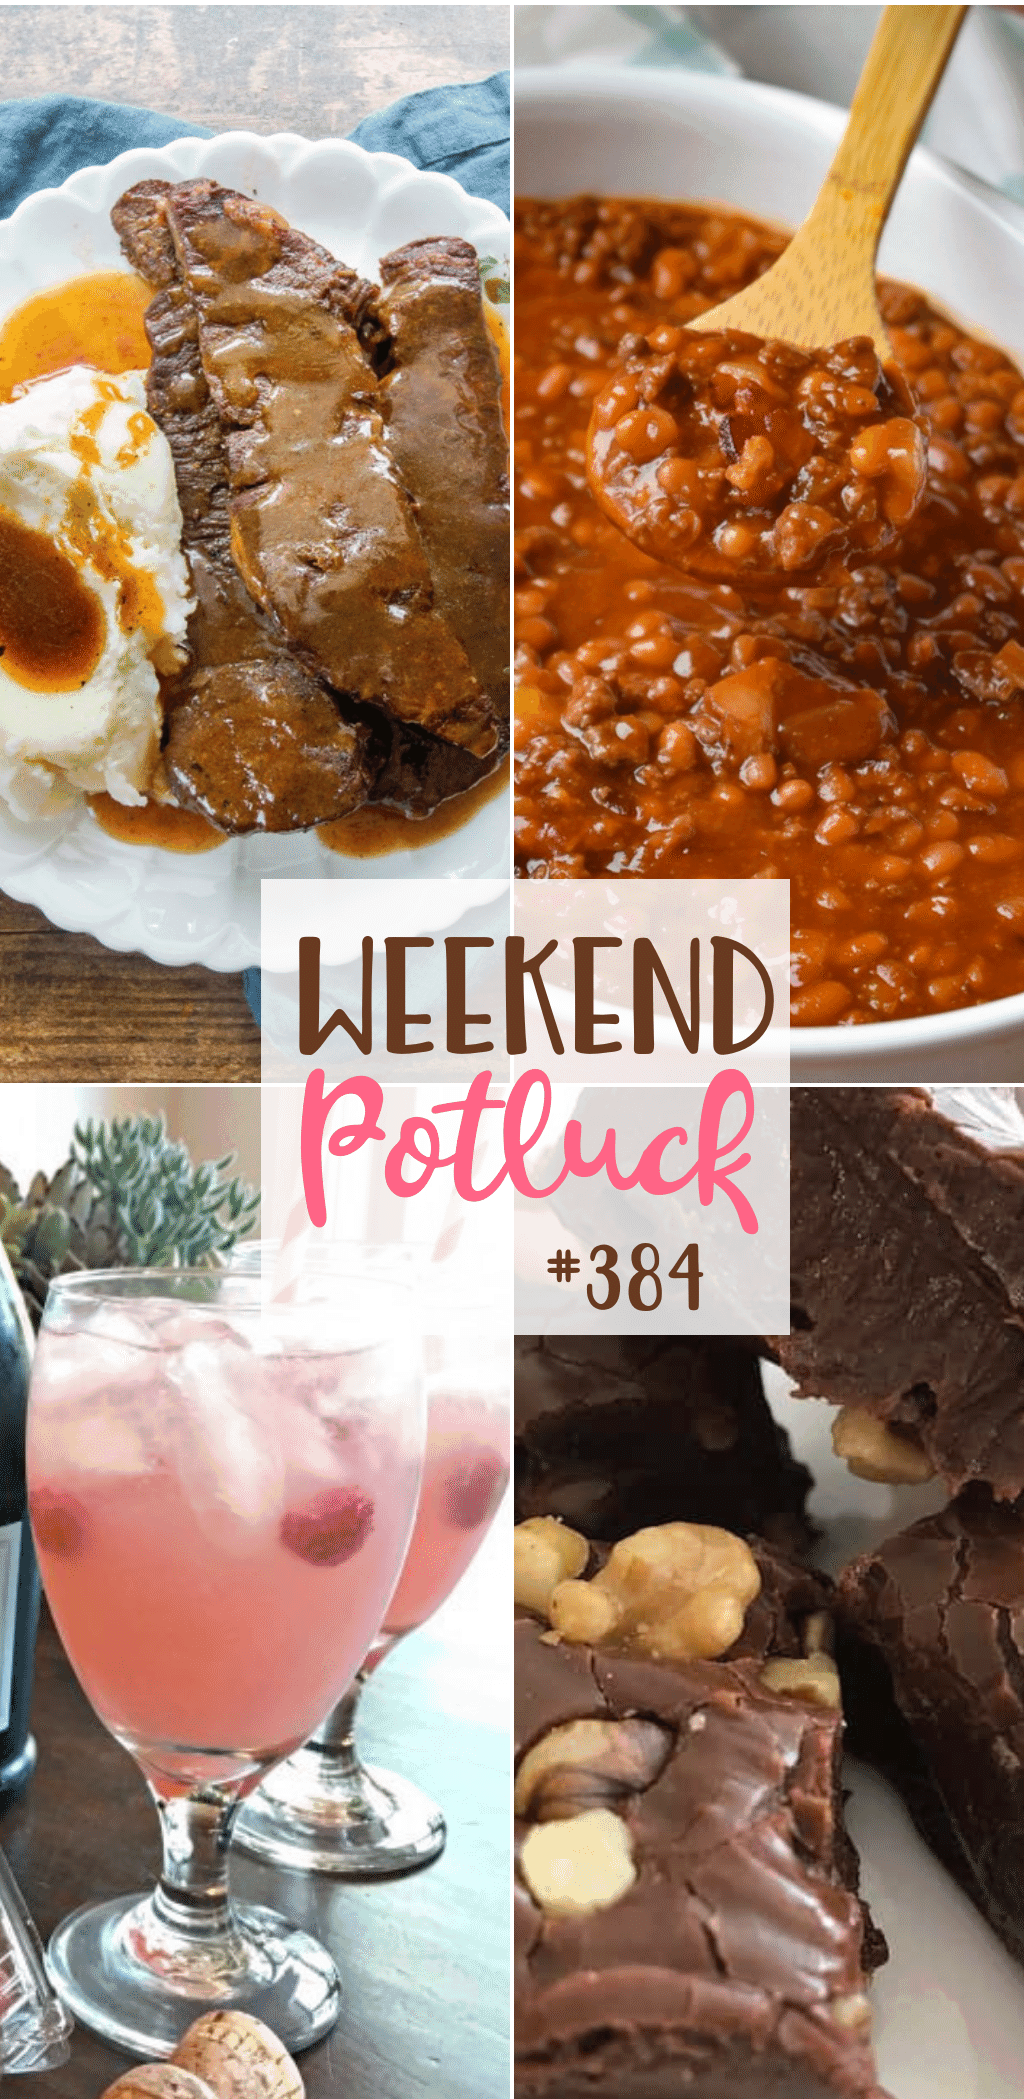 Weekend Potluck featured recipes include: Best Ever Baked Beans, Instant Pot Ribs & Gravy, Easy Chocolate Fudge Anyone Cane Make, Raspberry Lemonade Cocktail Spritzers #weekendpotluck #mealplanrecipes